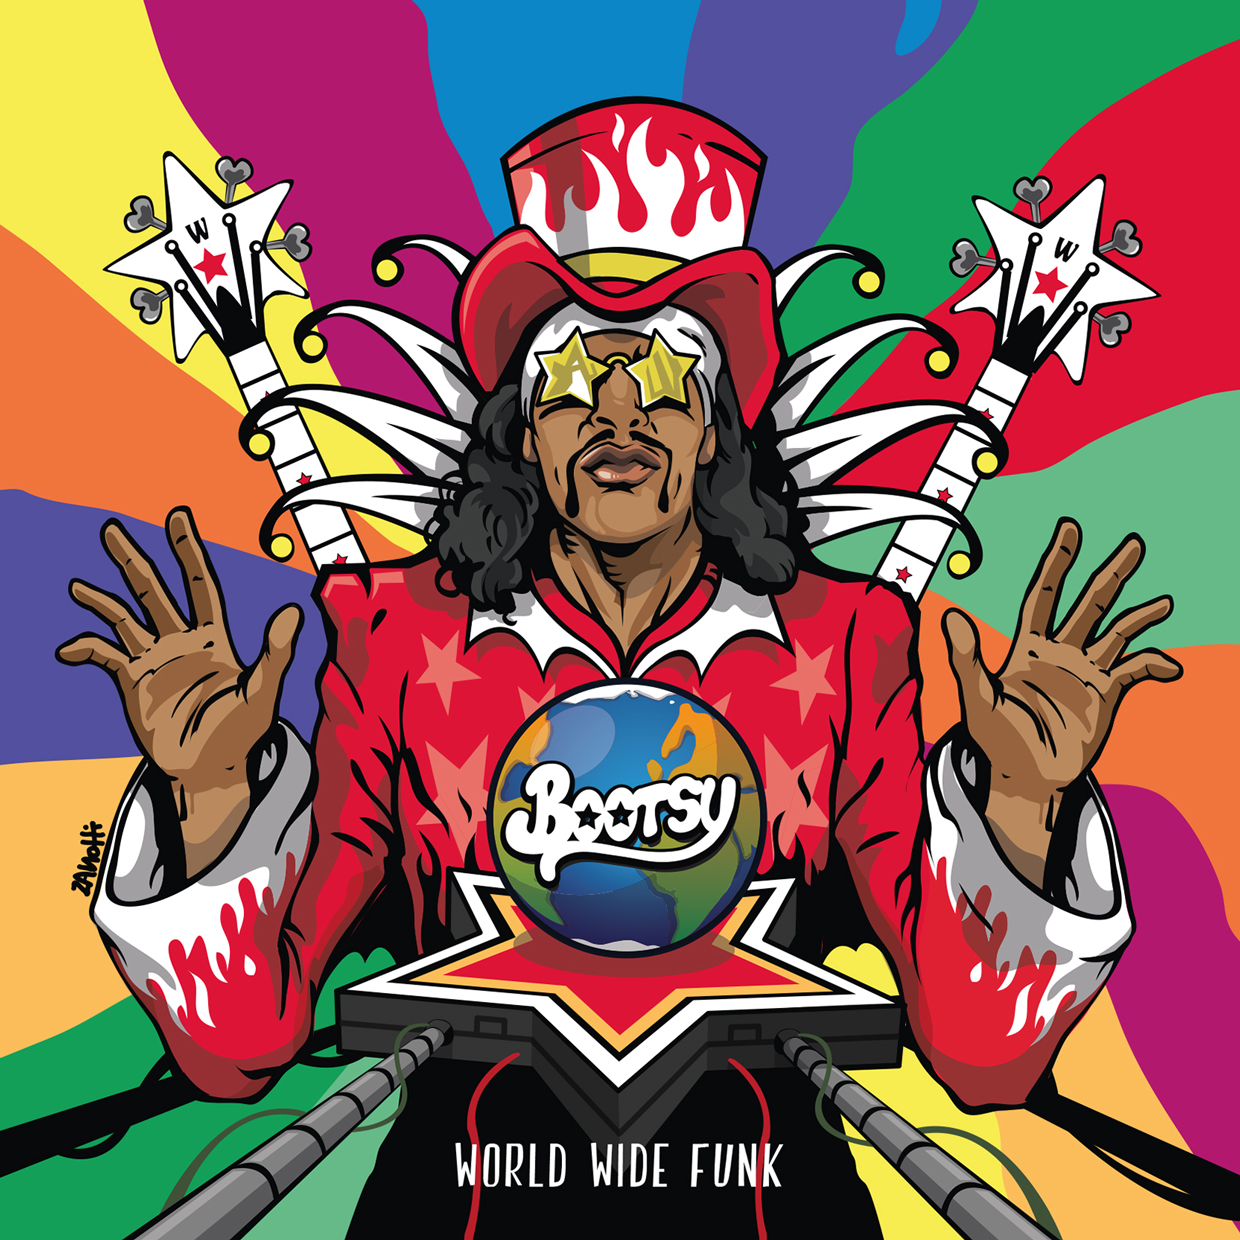 Bootsy-Collins-World-Wide-Funk-art-2017-billboard-1240